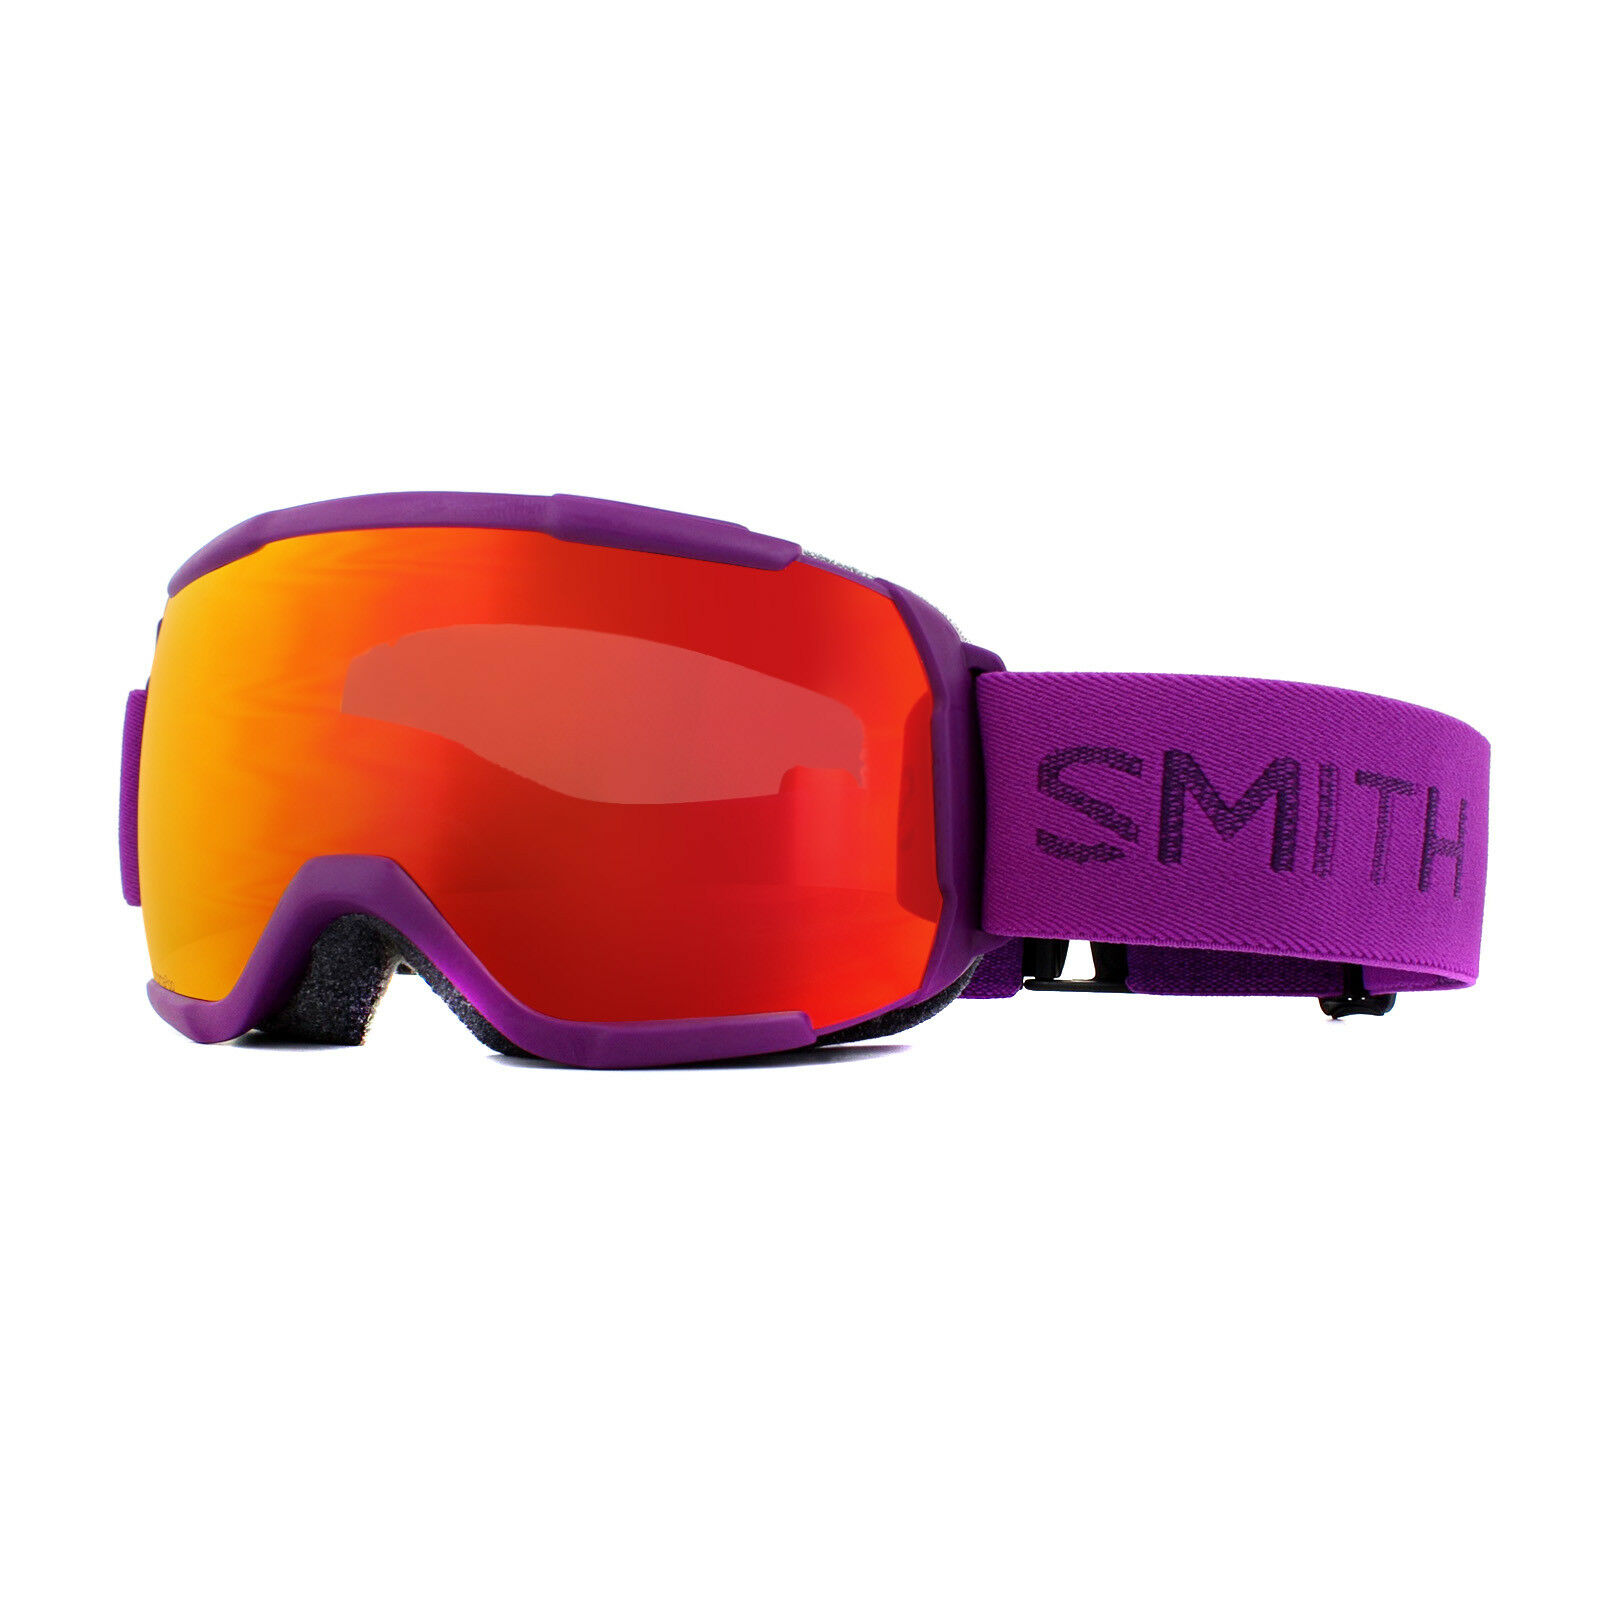 Smith Ski Goggles Showcase OTG M006702ZV996K Monarch ChromaPop ED purple Mirror